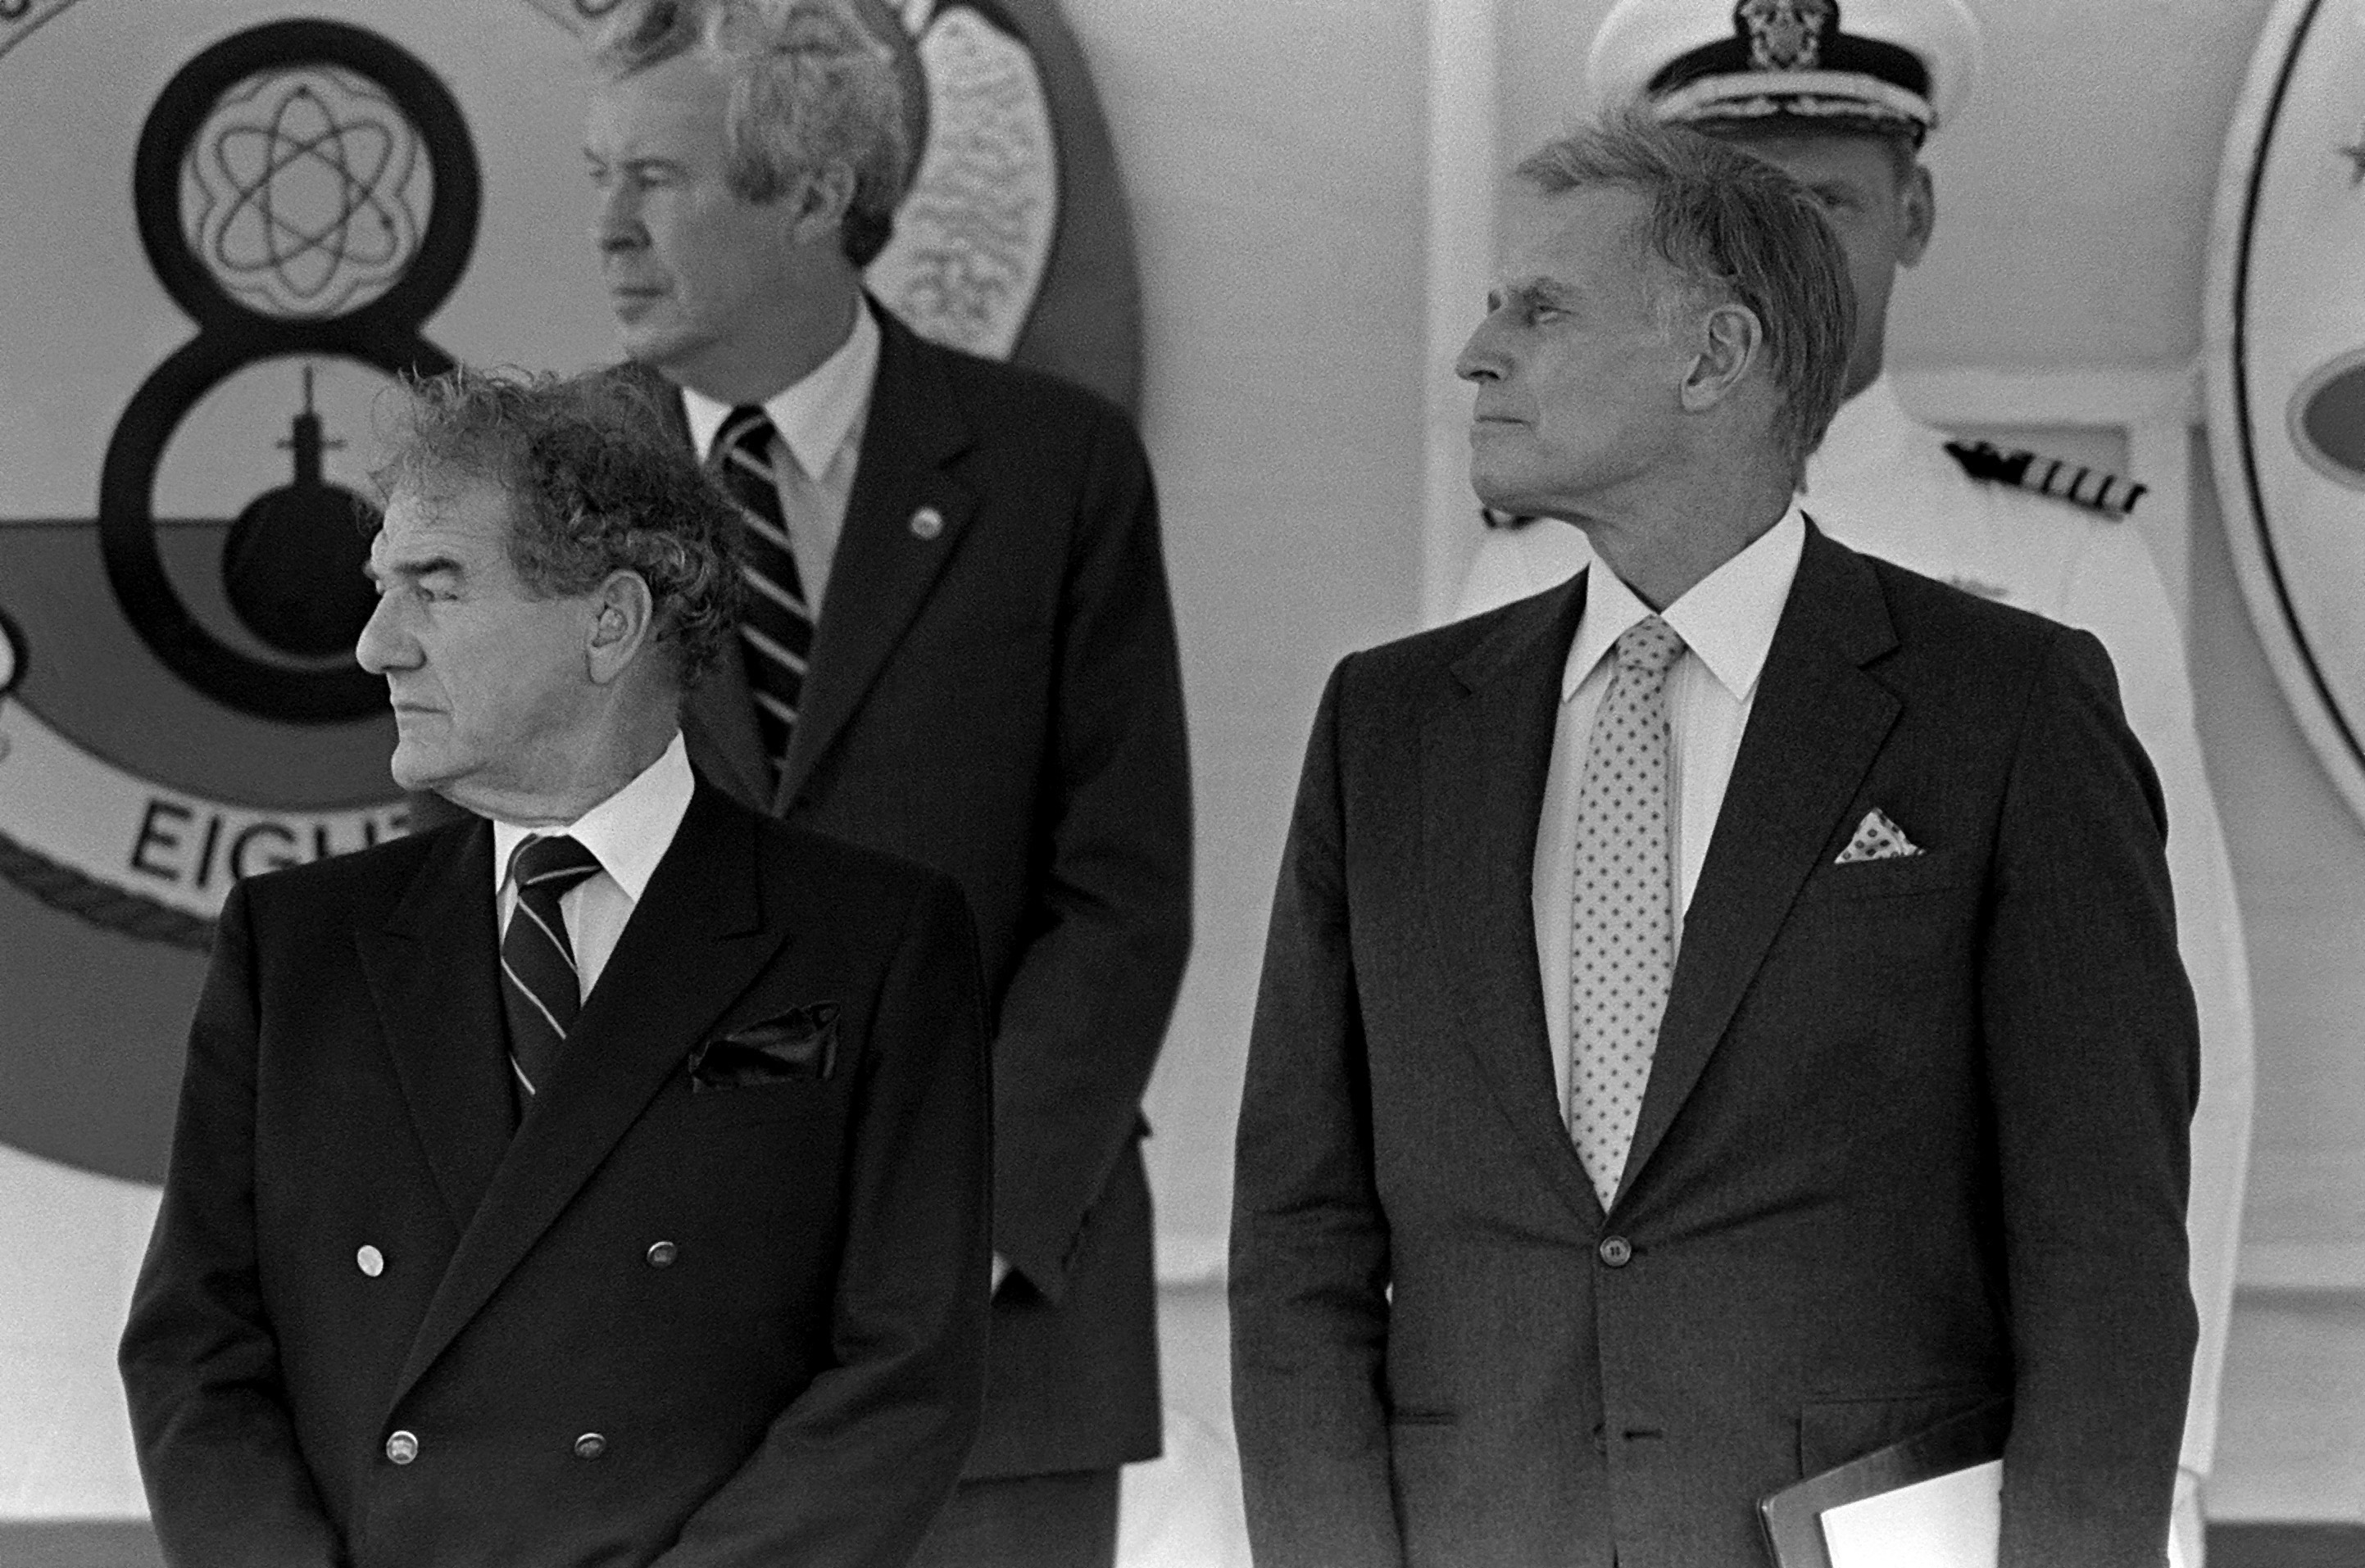 Actor Charlton Heston, principal speaker, right, and Assistant Secretary of the Navy for Research, Engineering and Systems Melvyn R. Paisley attend the commissioning of the nuclear-powered attack submarine USS CHICAGO (SSN 721)